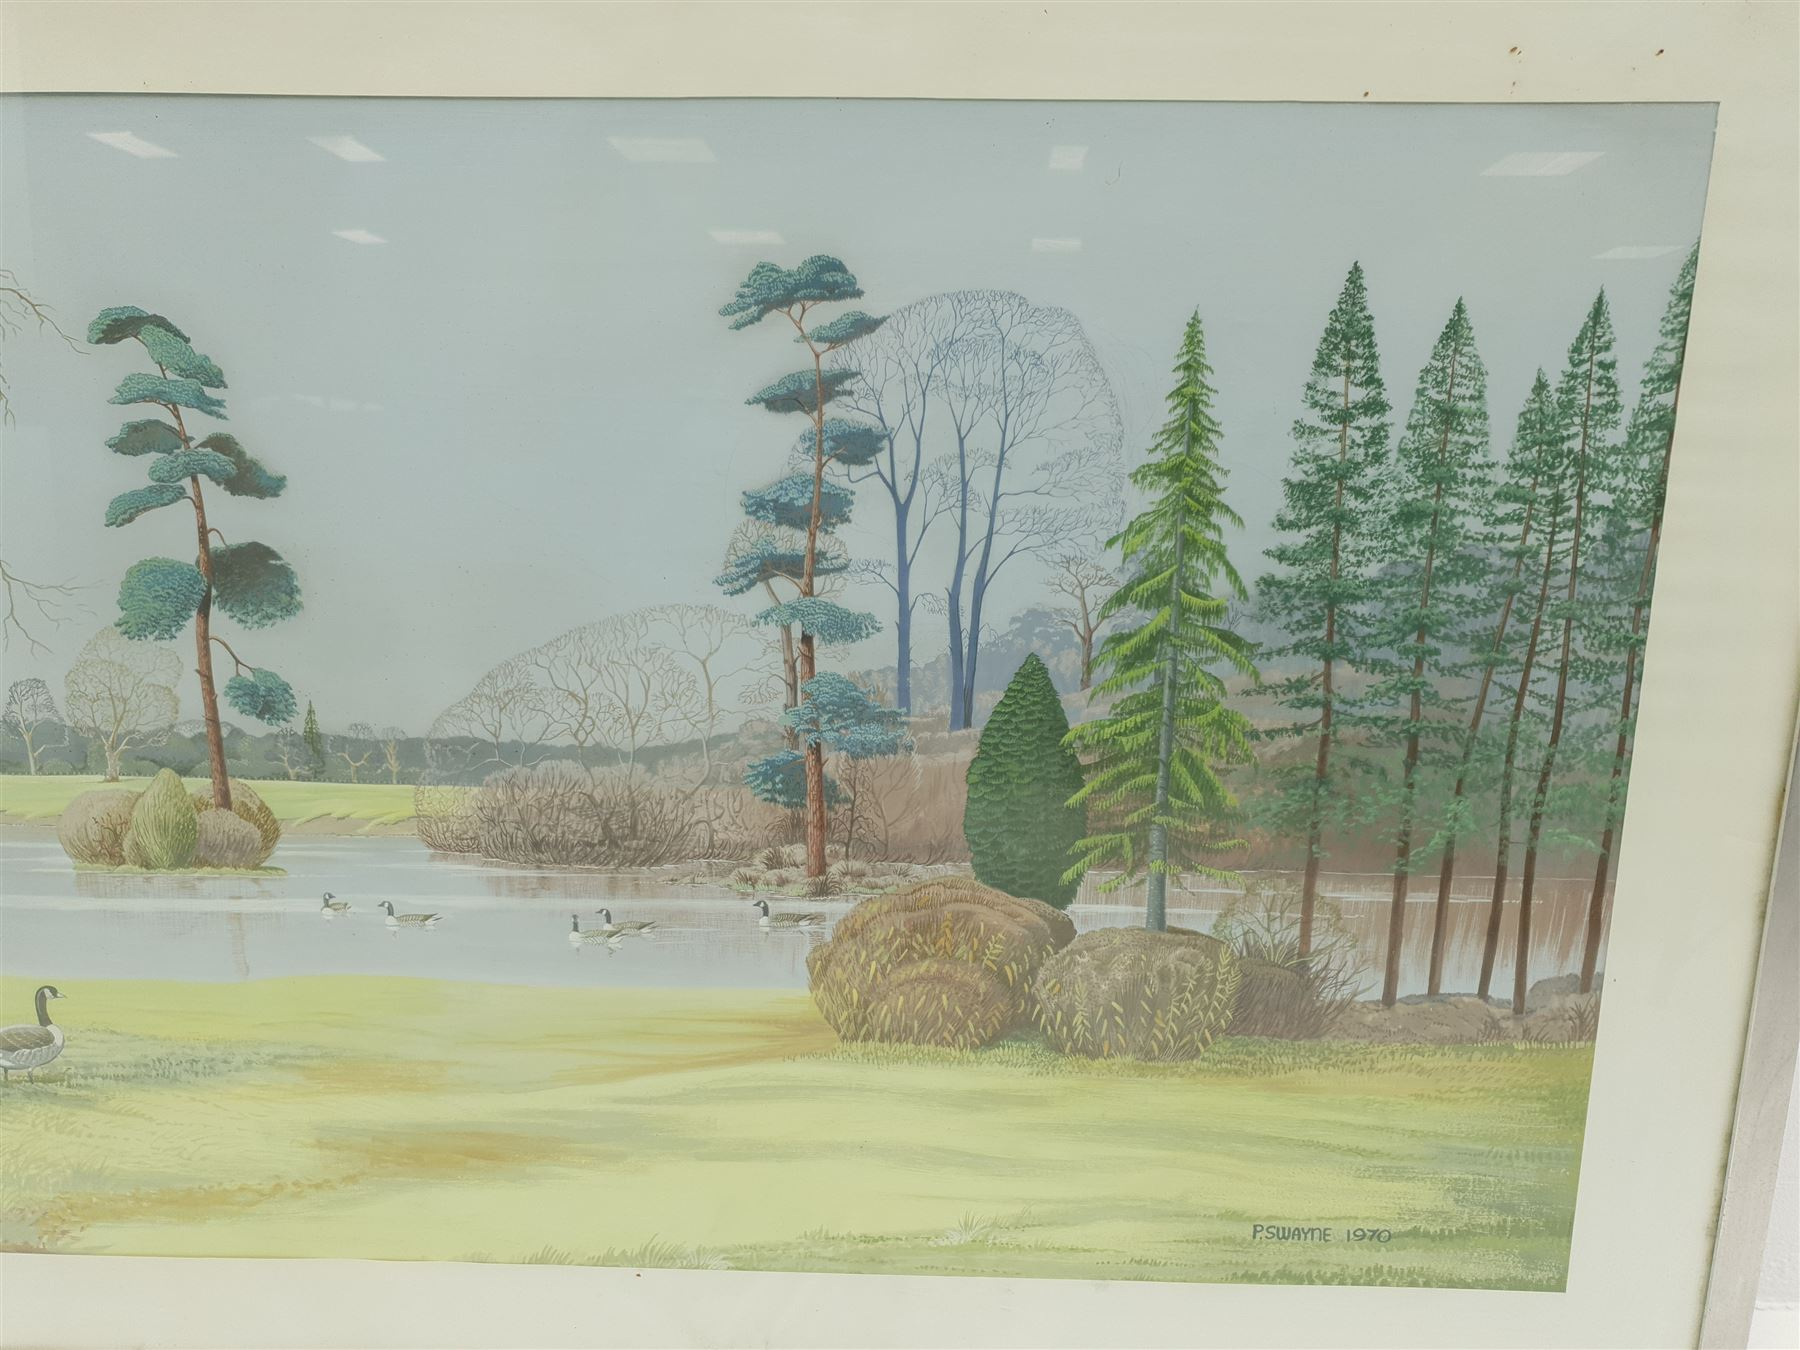 P Swayne (British 20th century): Geese in a River Landscape - Image 4 of 5